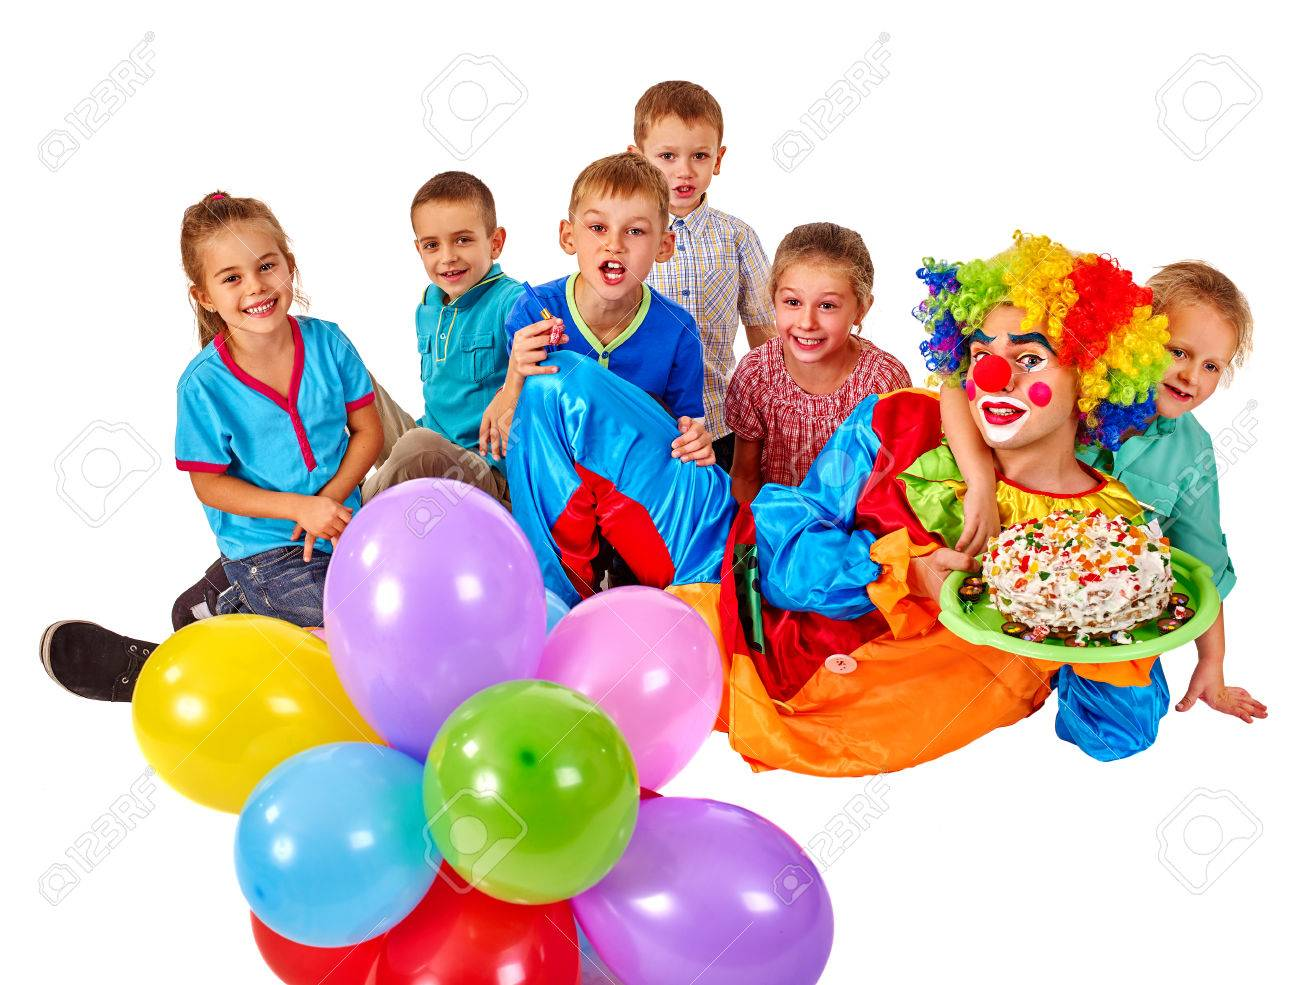 Clown Keeps Bunch Of Balloons And Birthday Cake With Group Children Celebration Isolated